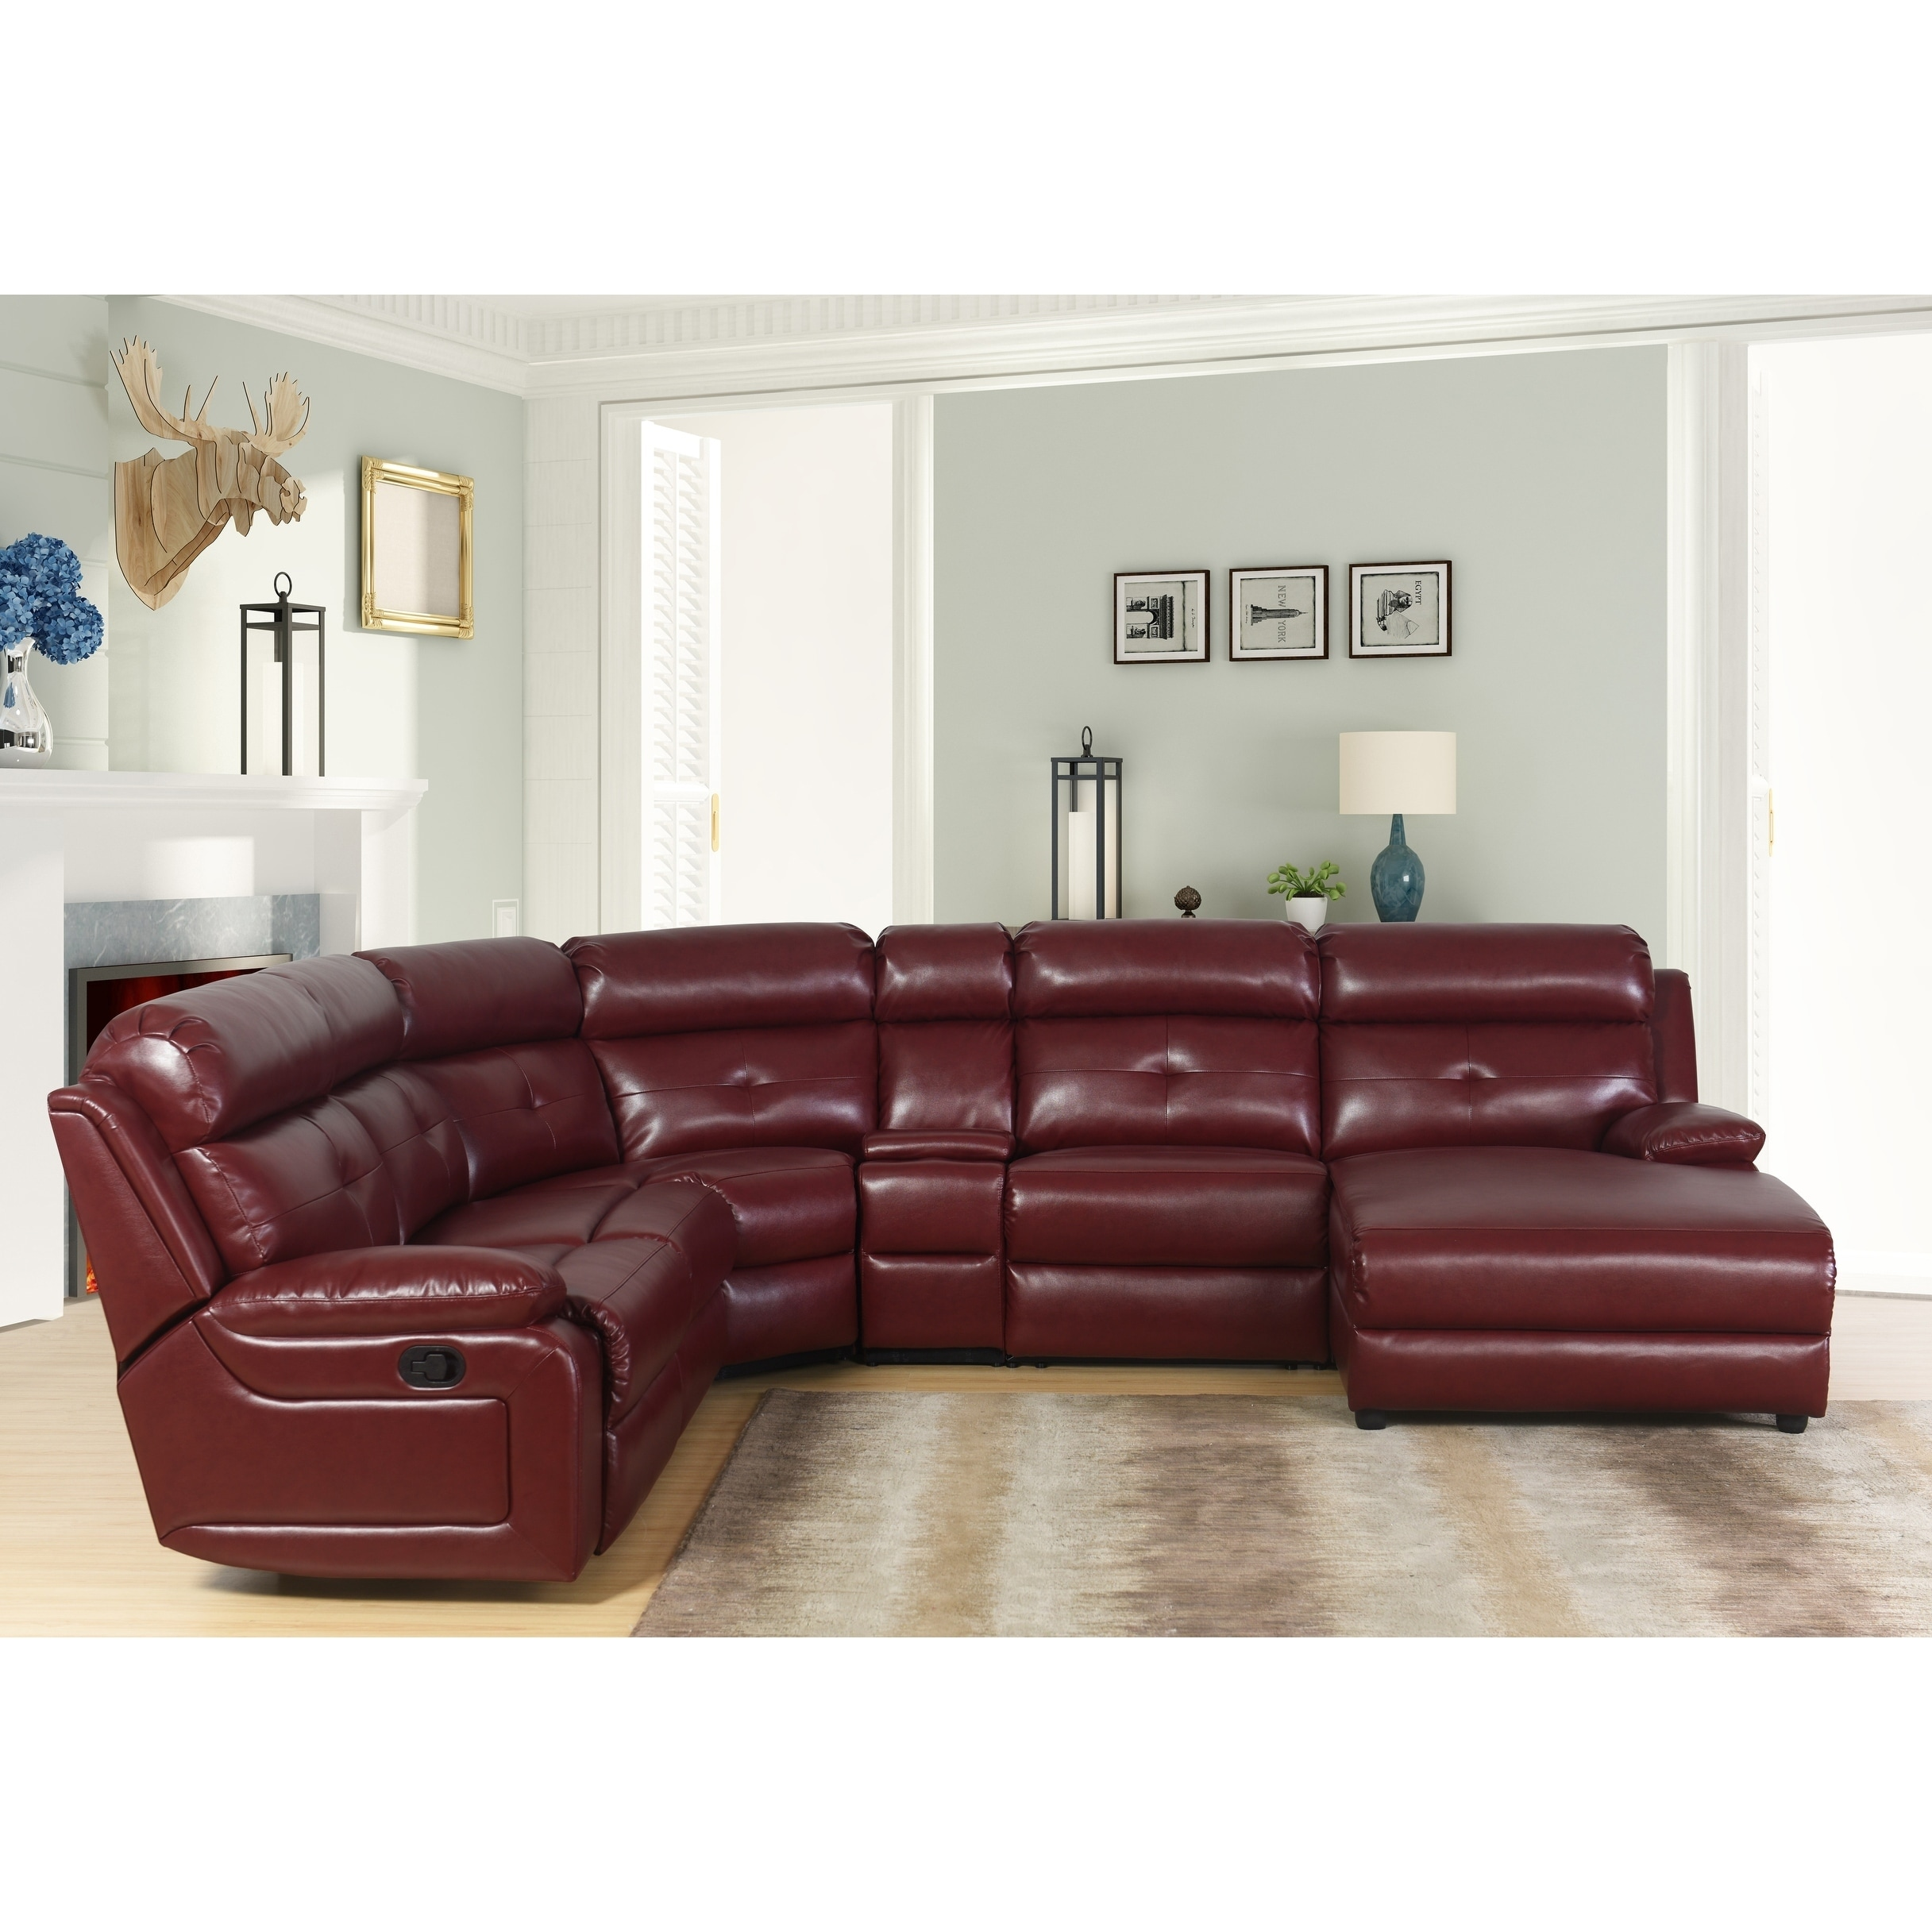 Shop Abbyson Stevens 6 Piece Red Bonded Leather Reclining Sectional